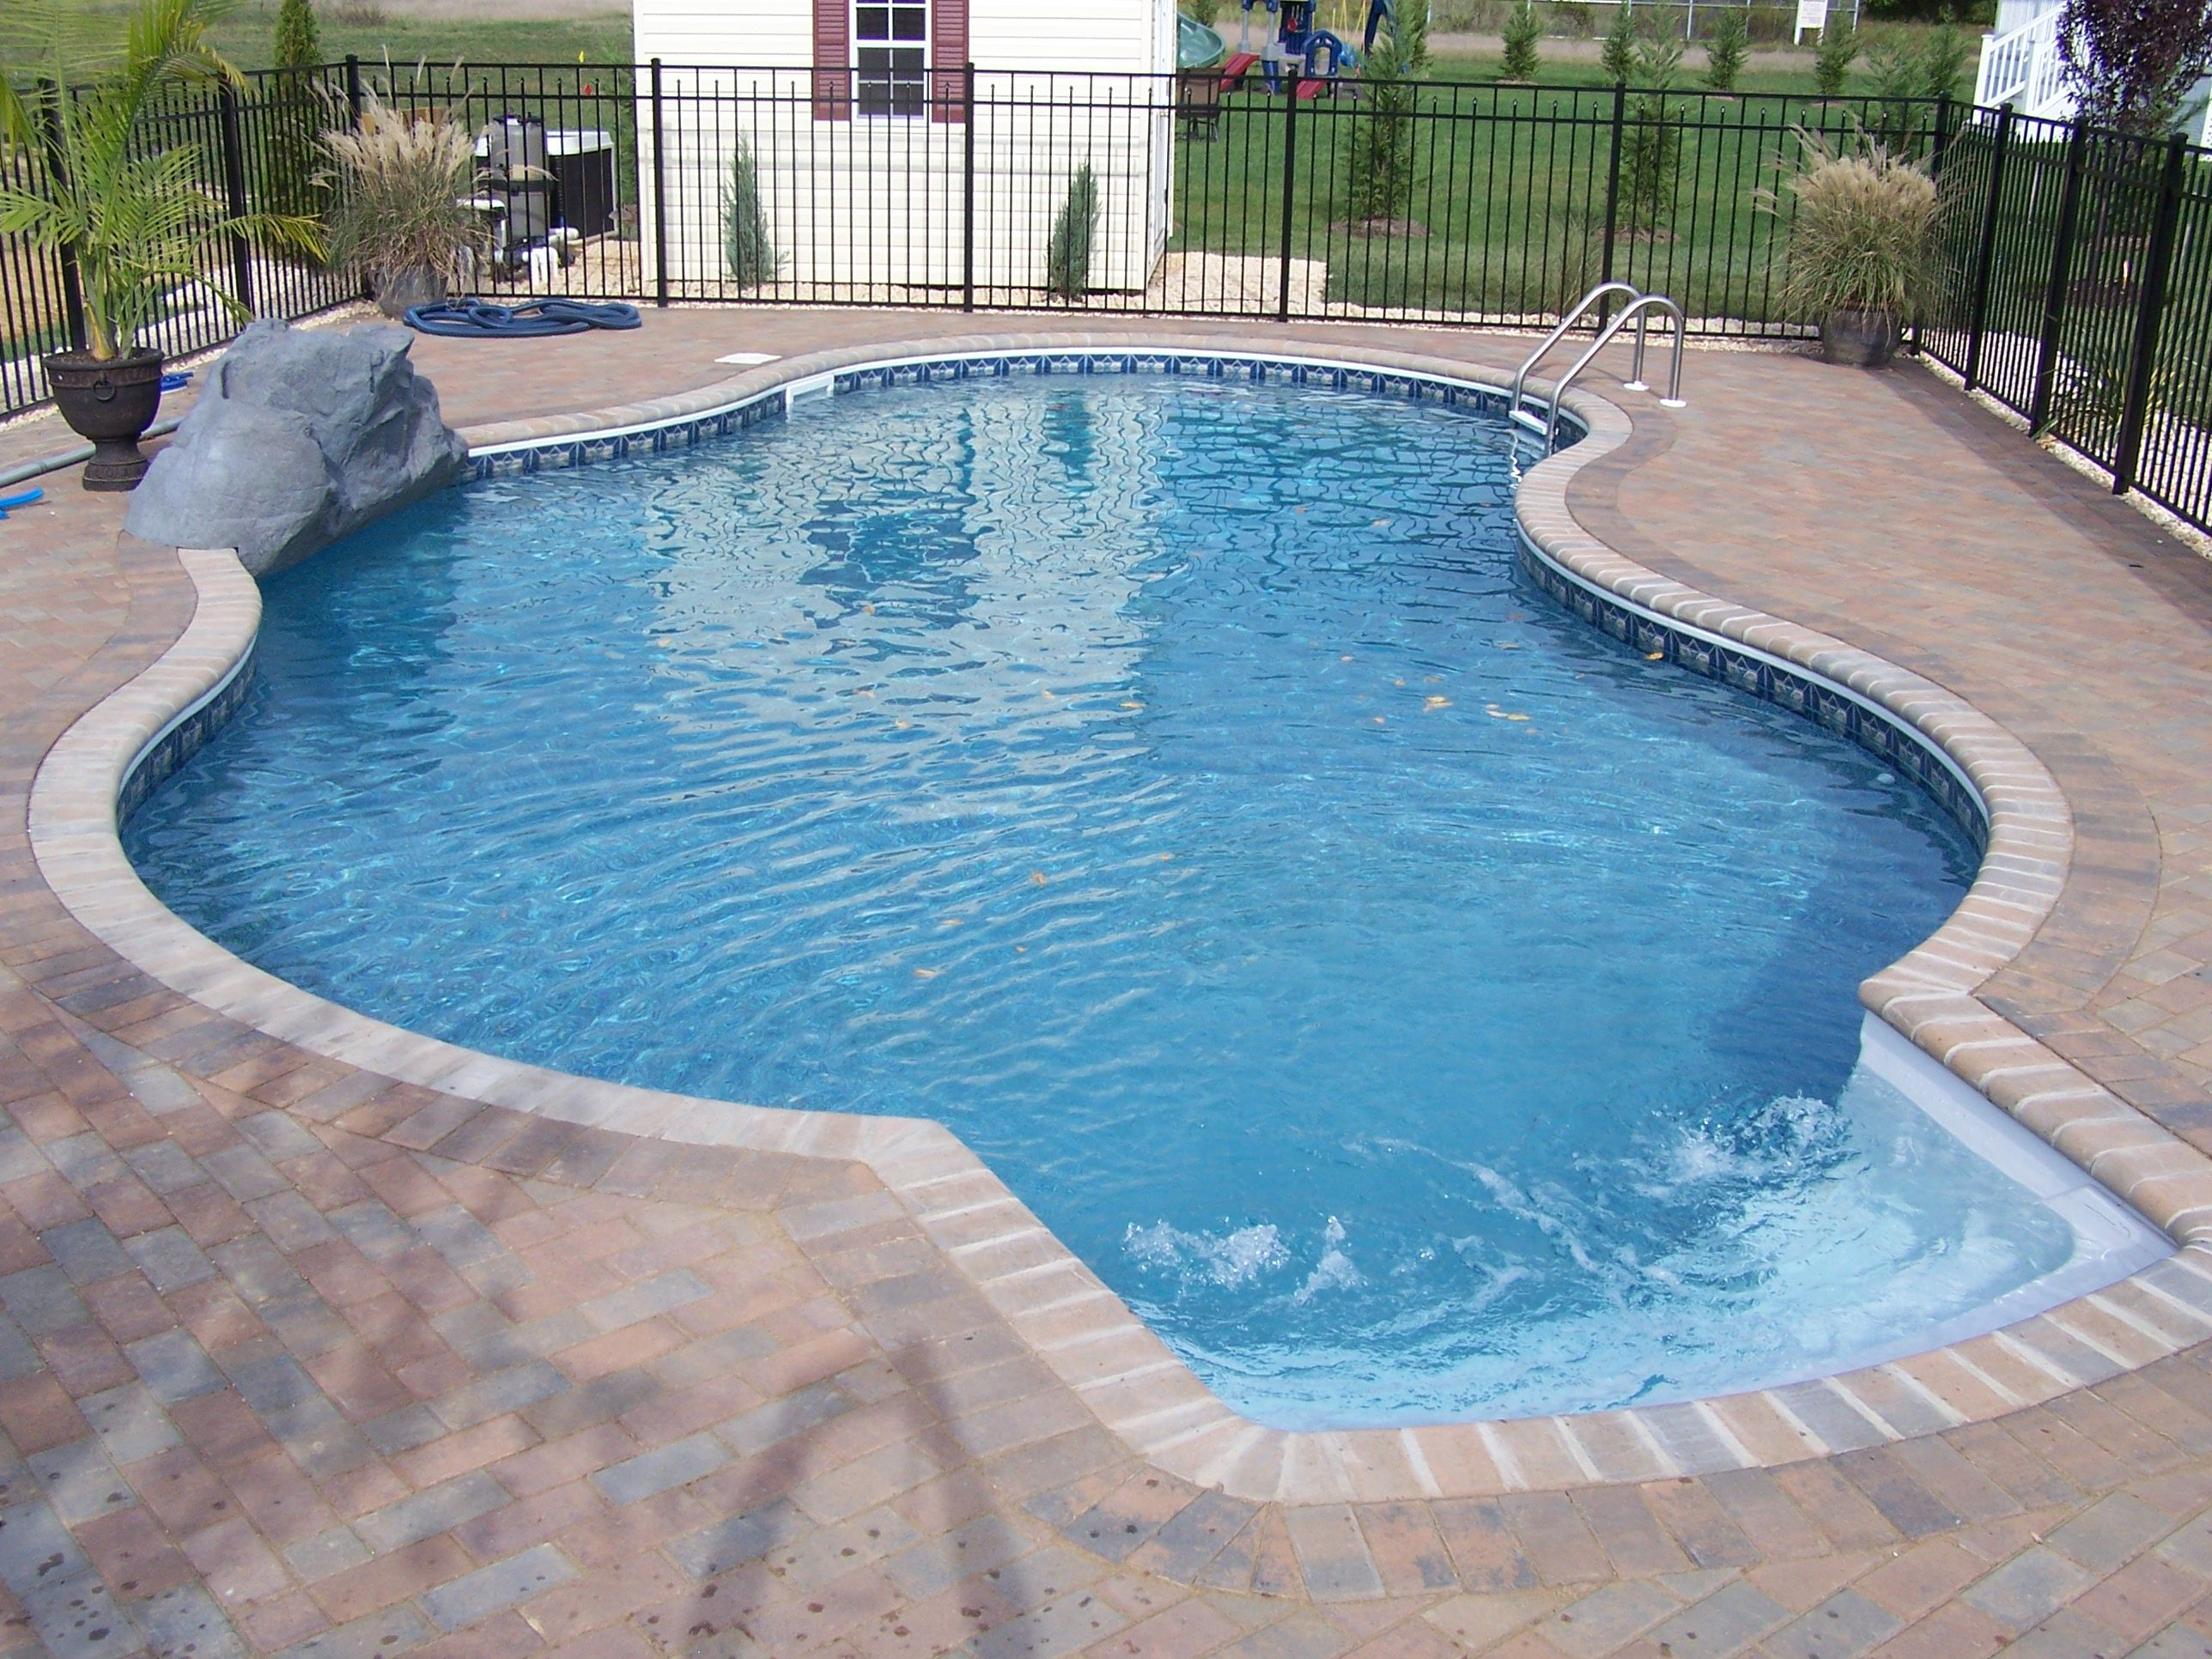 Freeform With Brick Coping Paver Patio Waterfall And Aluminum Fence Our Beautiful Swimming